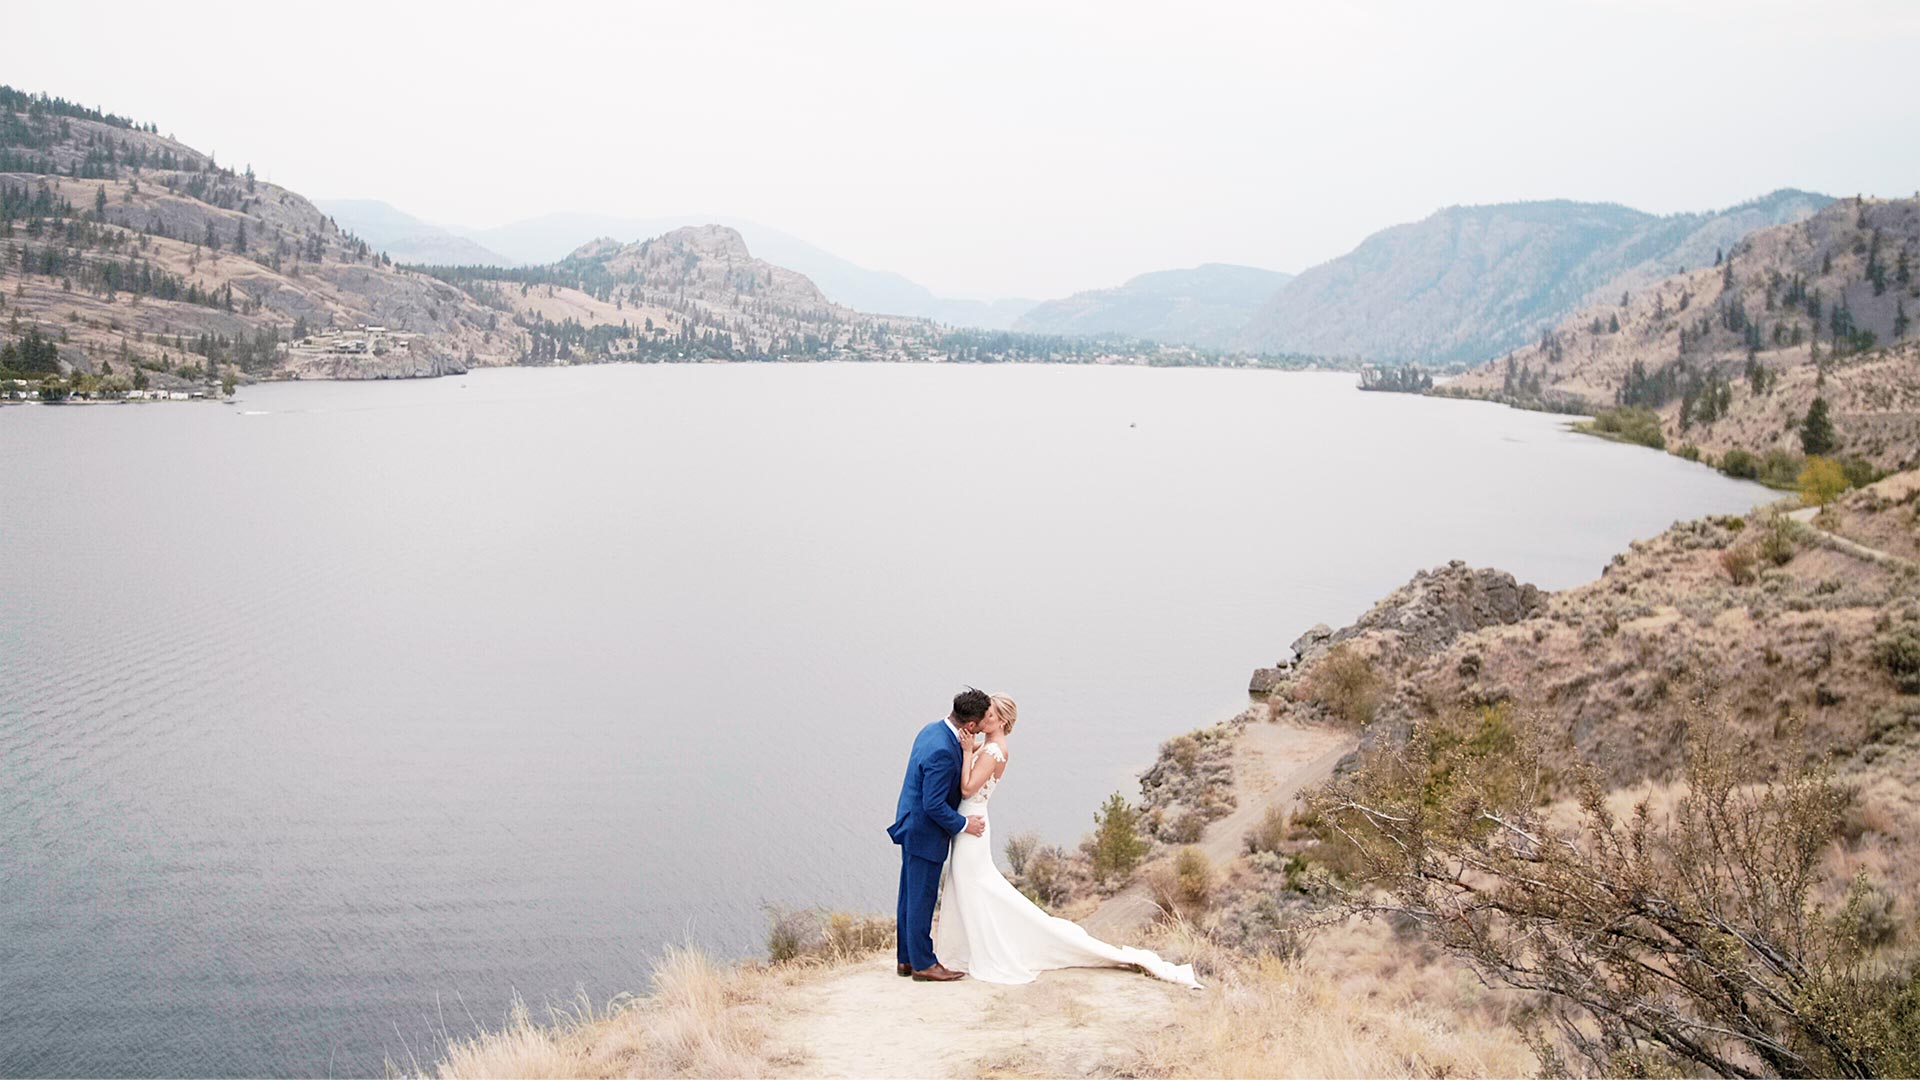 couple kiss on clifftop overlooking skaha lake by okanagan wedding videographer kismet creative